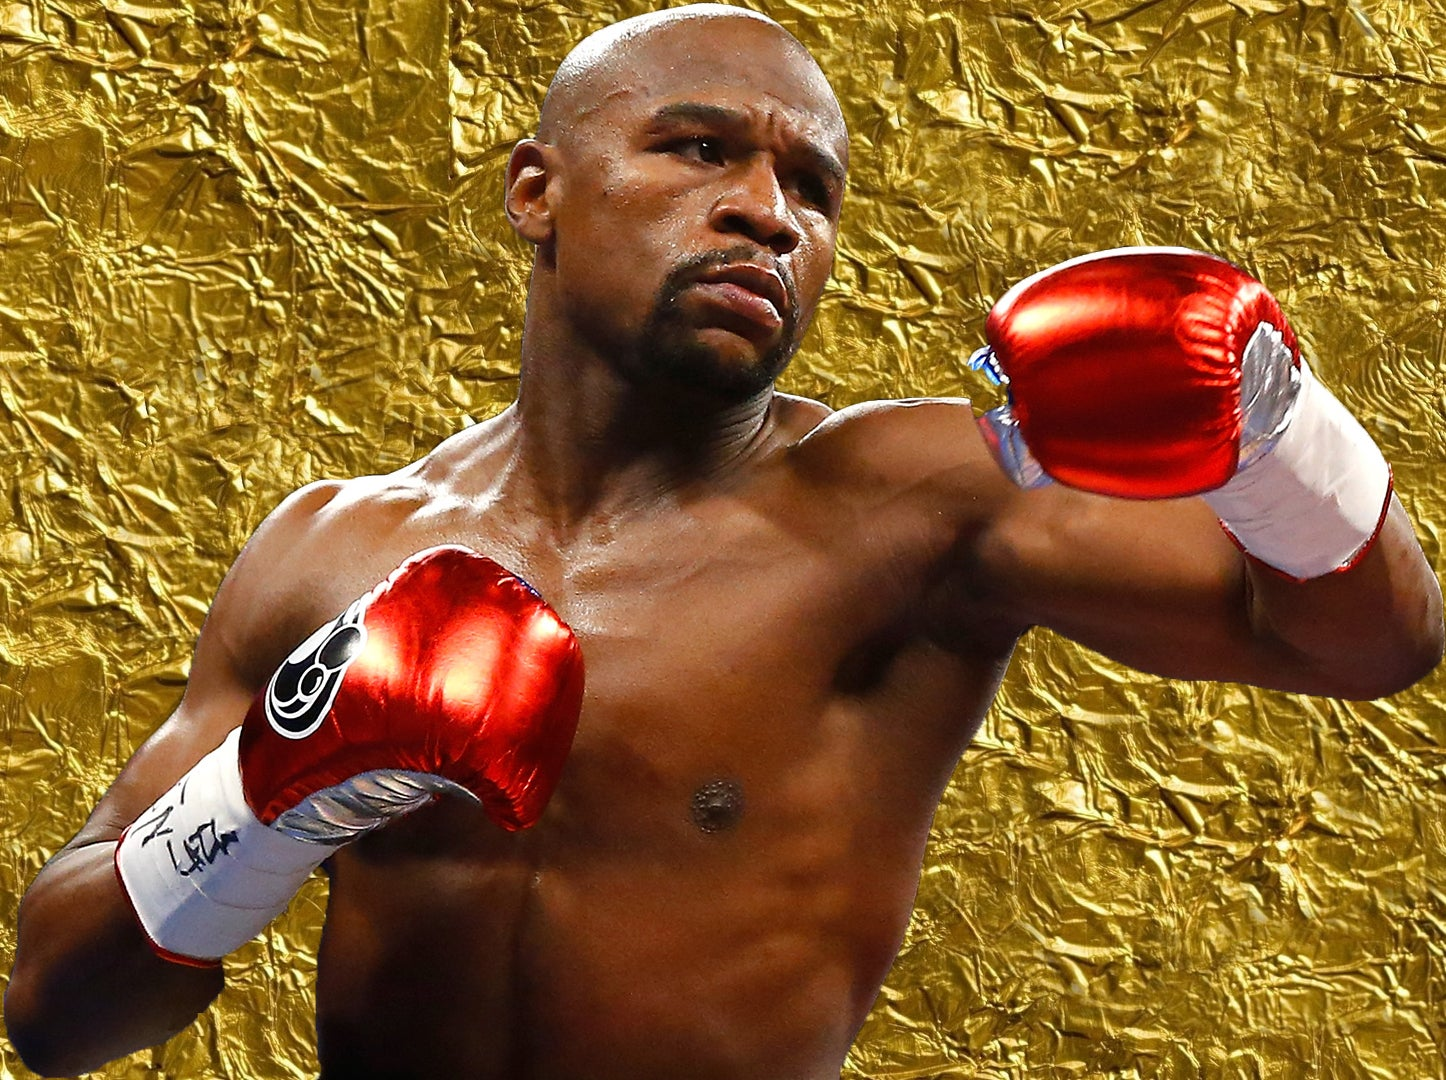 Floyd mayweathers height reach weight and record his essential floyd mayweathers height reach weight and record his essential stats ahead of his fight with conor mcgregor the independent ccuart Images